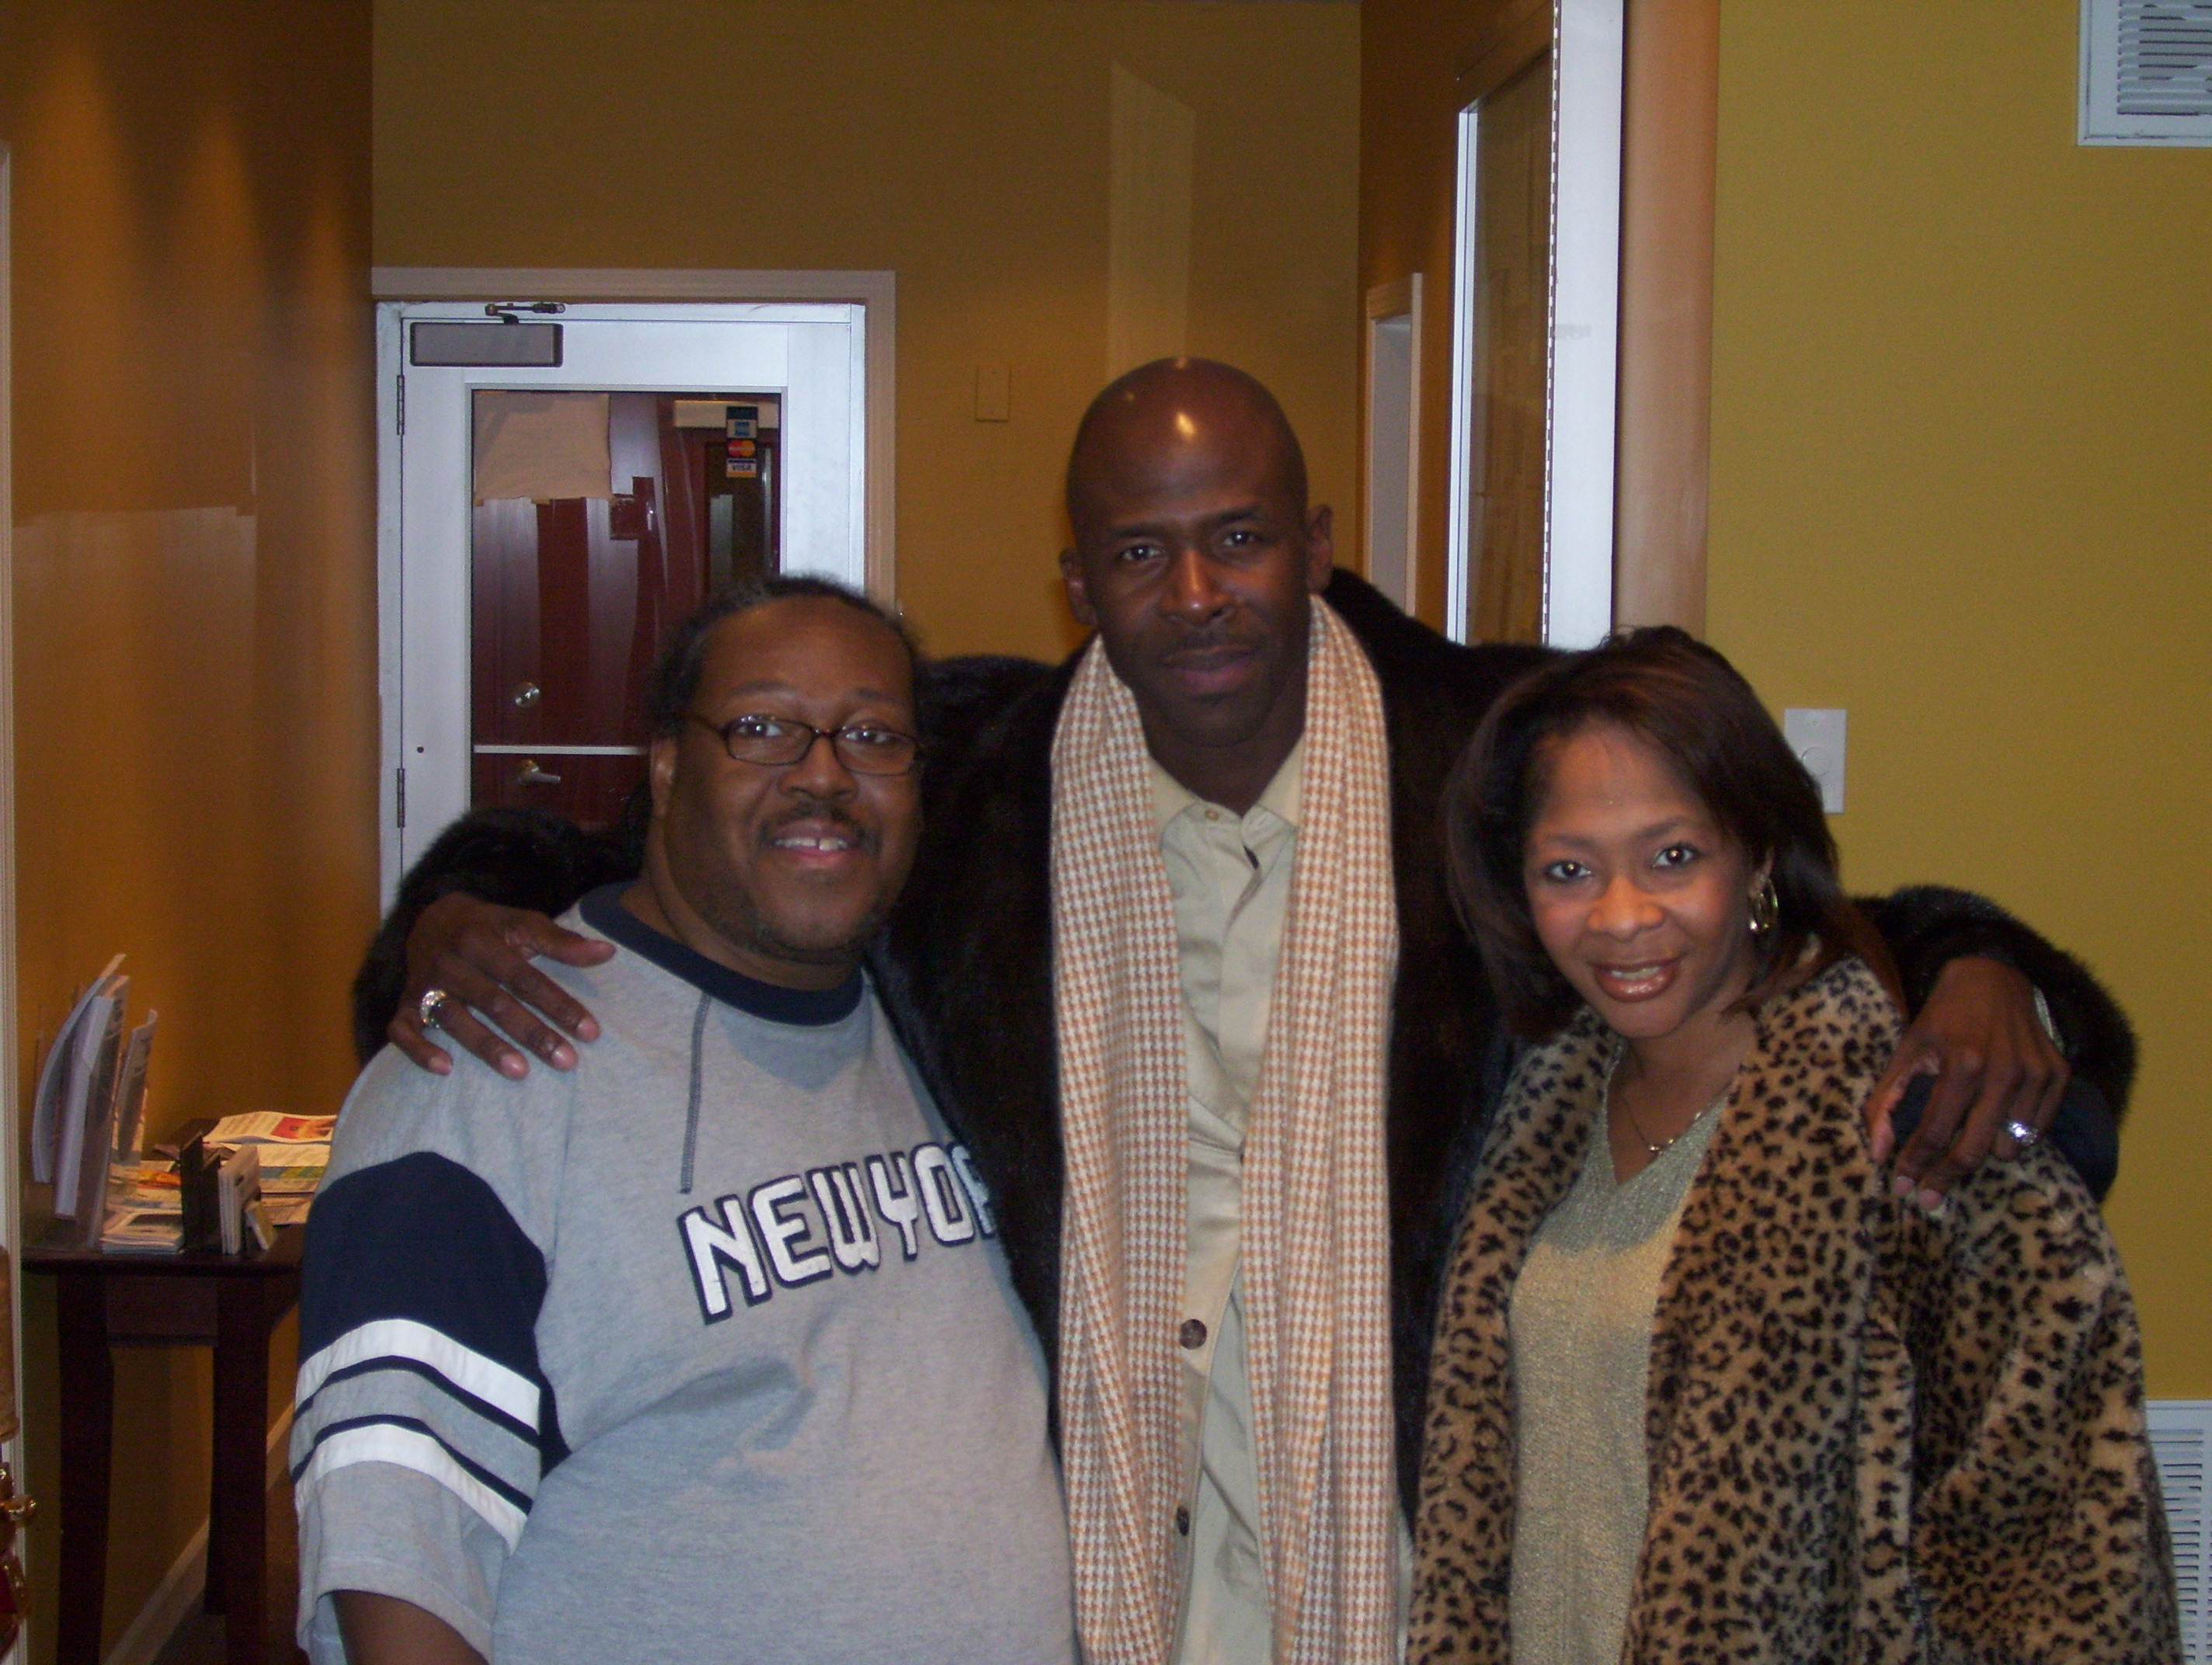 PJ WILLIS WITH GOSPEL GREAT RICKY DILLARD & ZYKIA PICKETT